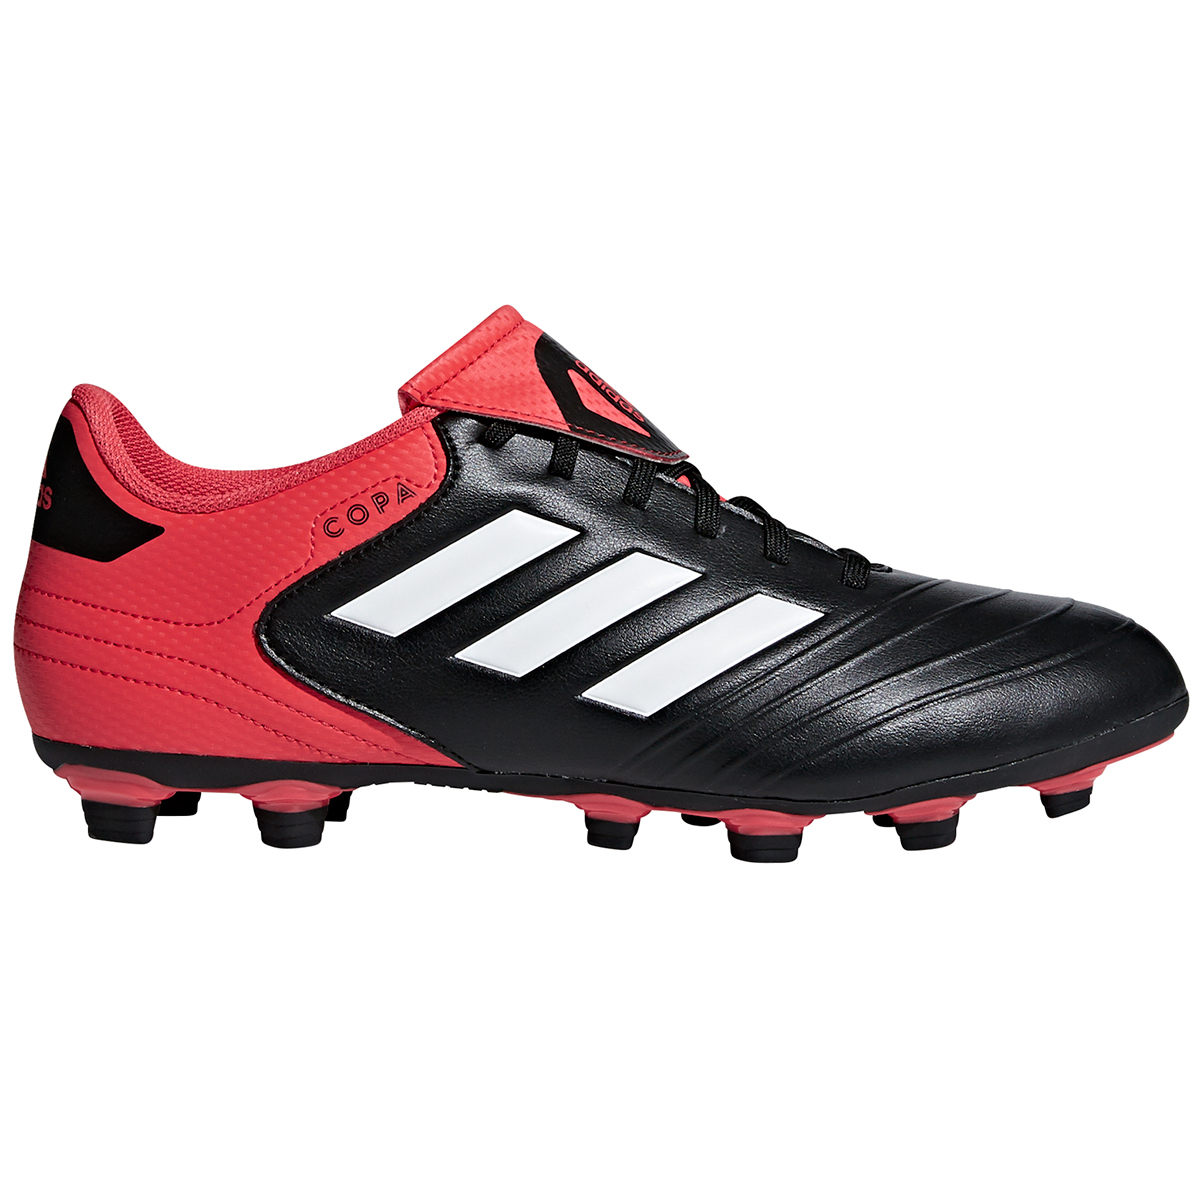 Adidas Men's Copa 18.4 Fxg Firm Ground Soccer Cleats - Black, 11